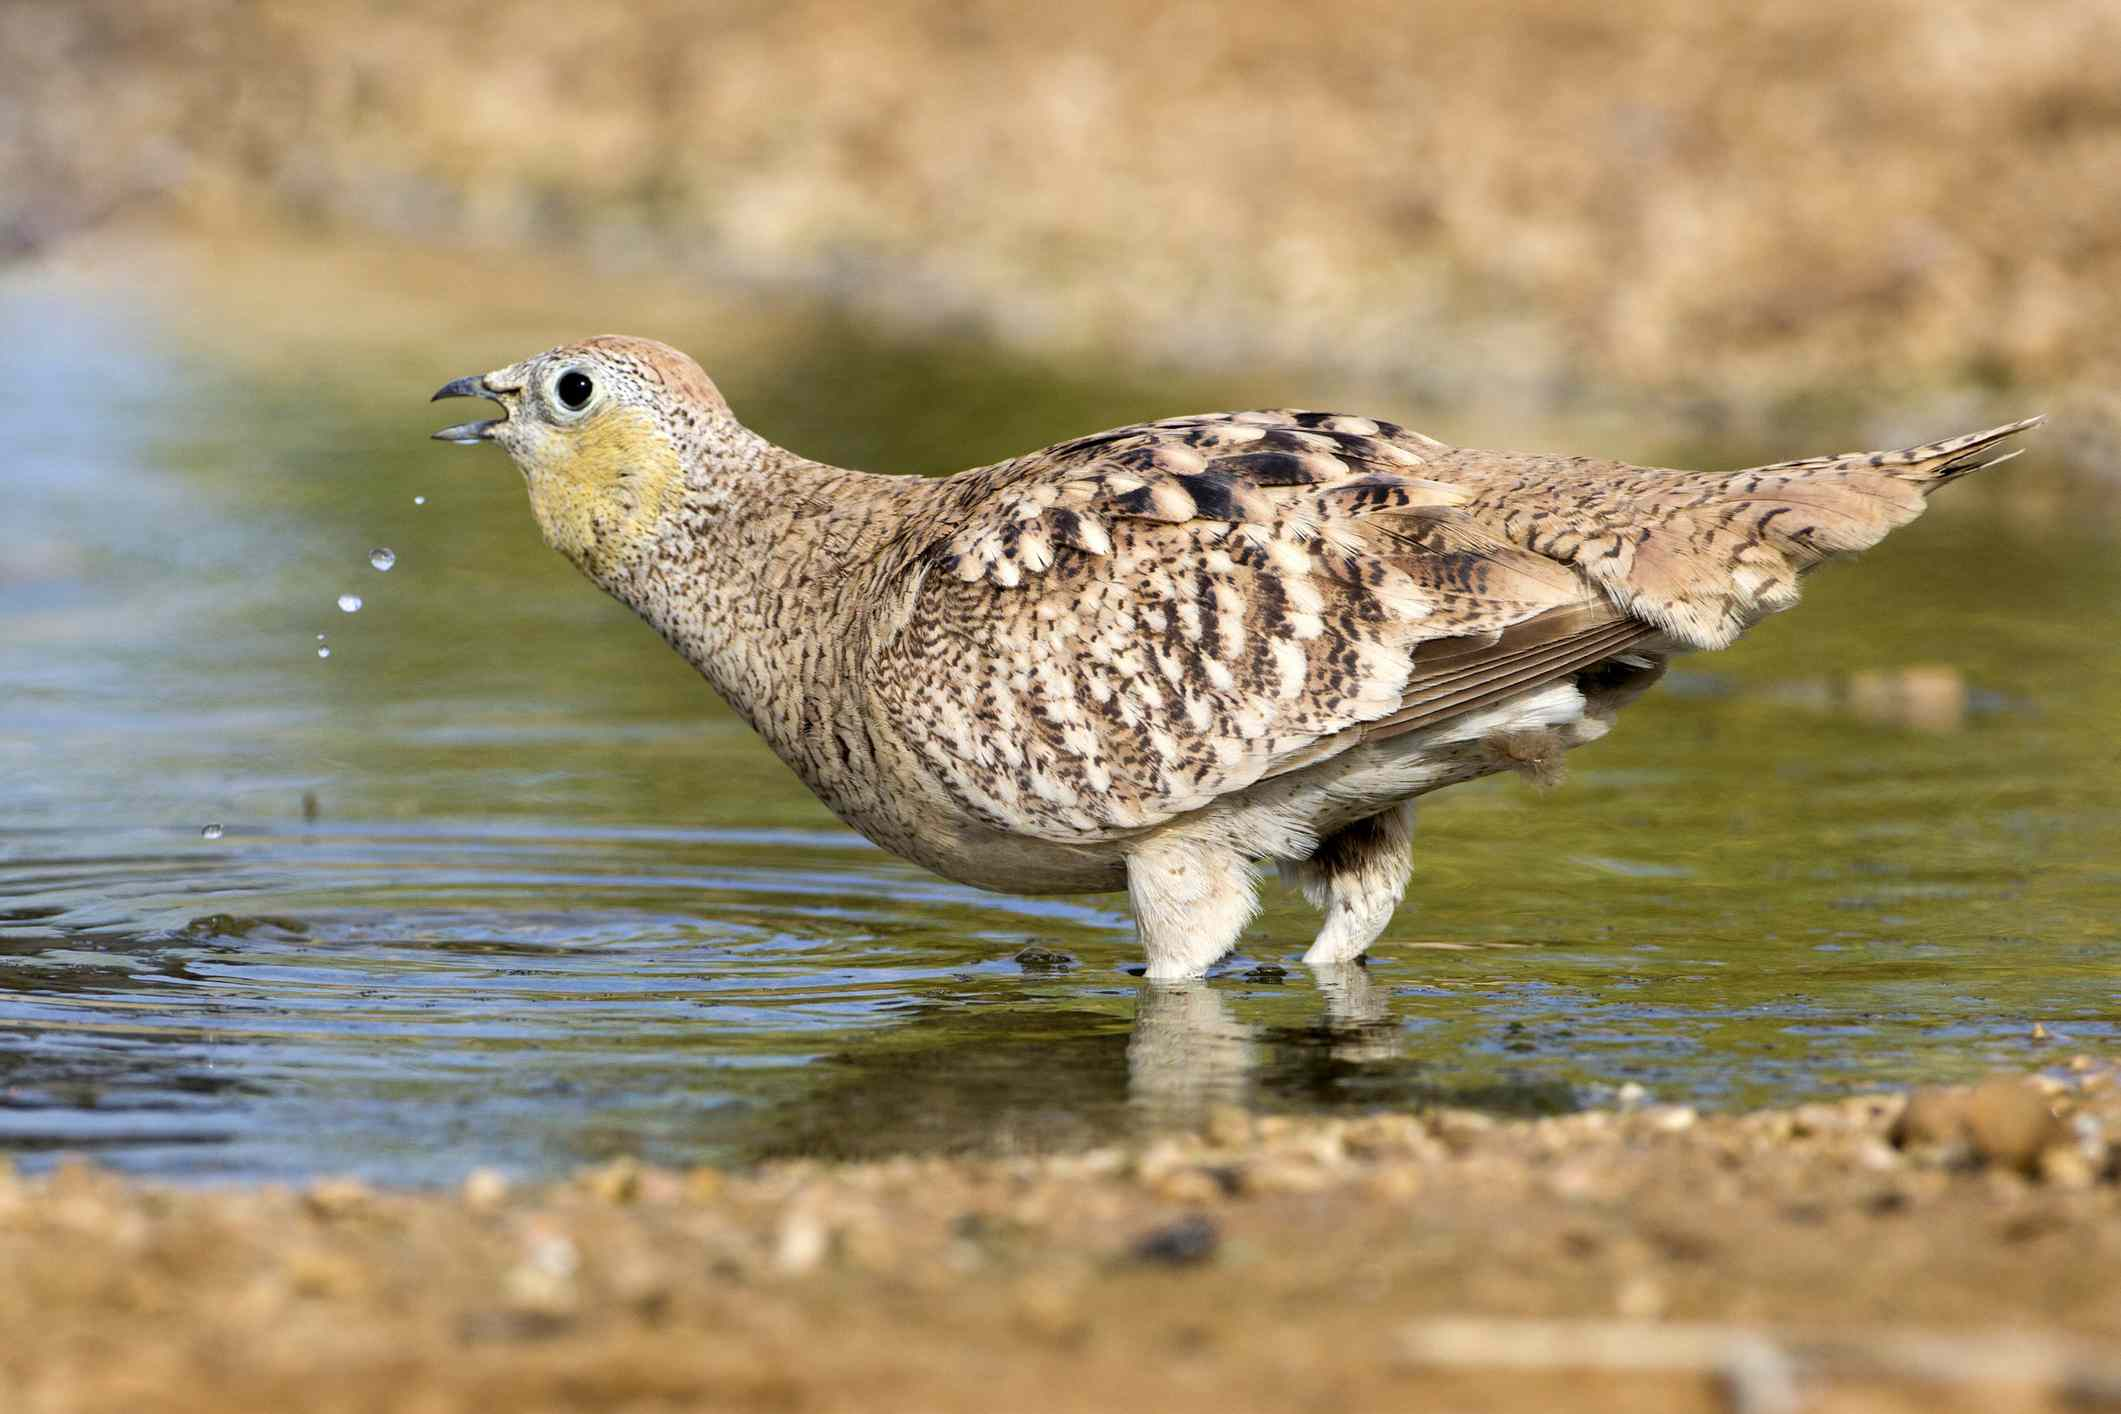 Crowned sandgrouse drinking water